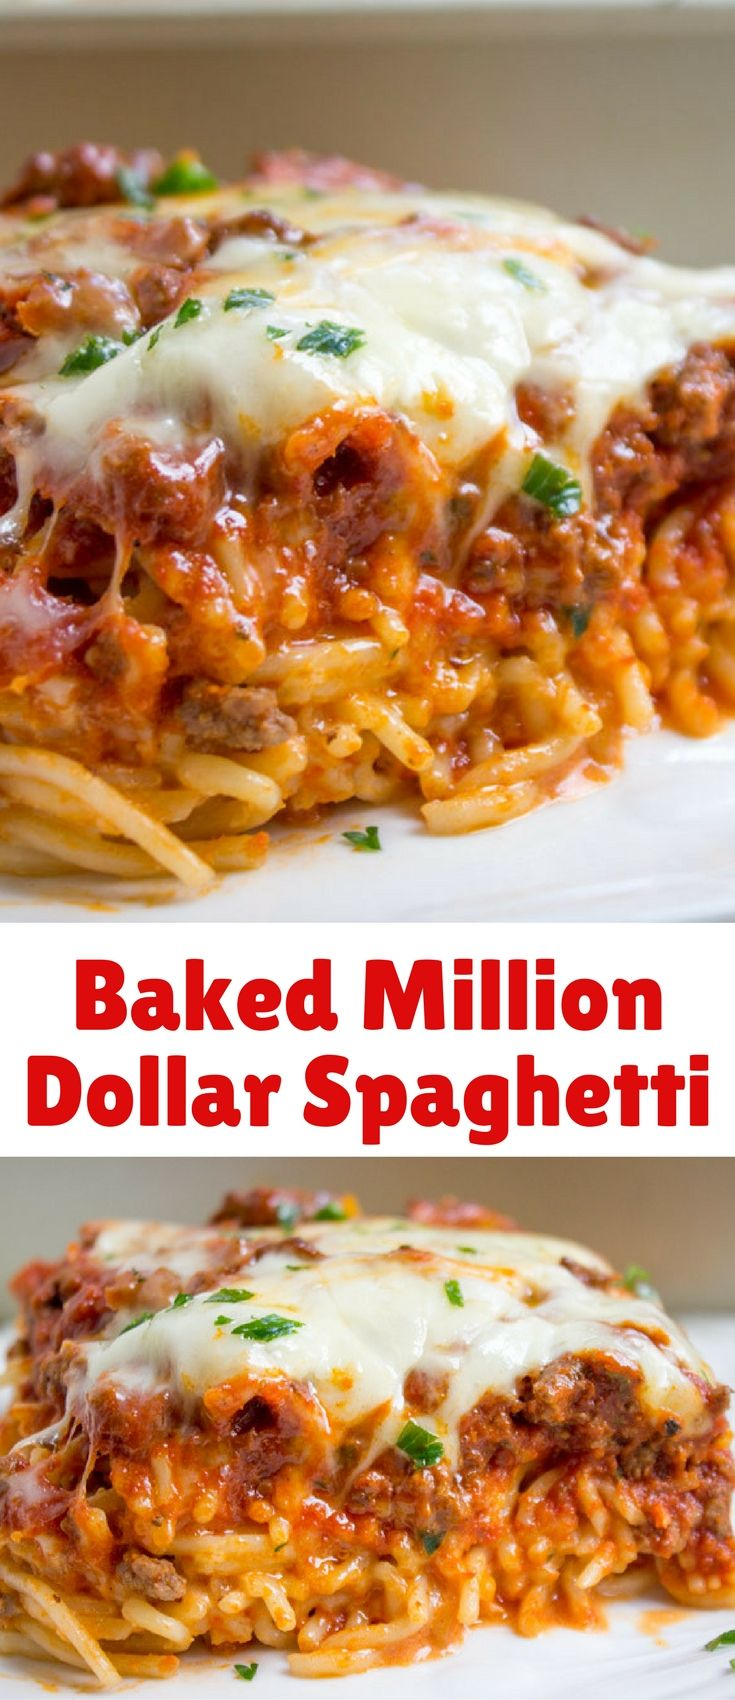 Baked Million Dollar Spaghetti is creamy with a melty cheese center, topped with meat sauce and extra bubbly cheese. Tastes like a cross between baked ziti and lasagna with half the effort! Read more at: Baked Million Dollar Spaghetti http://dinnerthendes (Bake Zucchini Ziti)